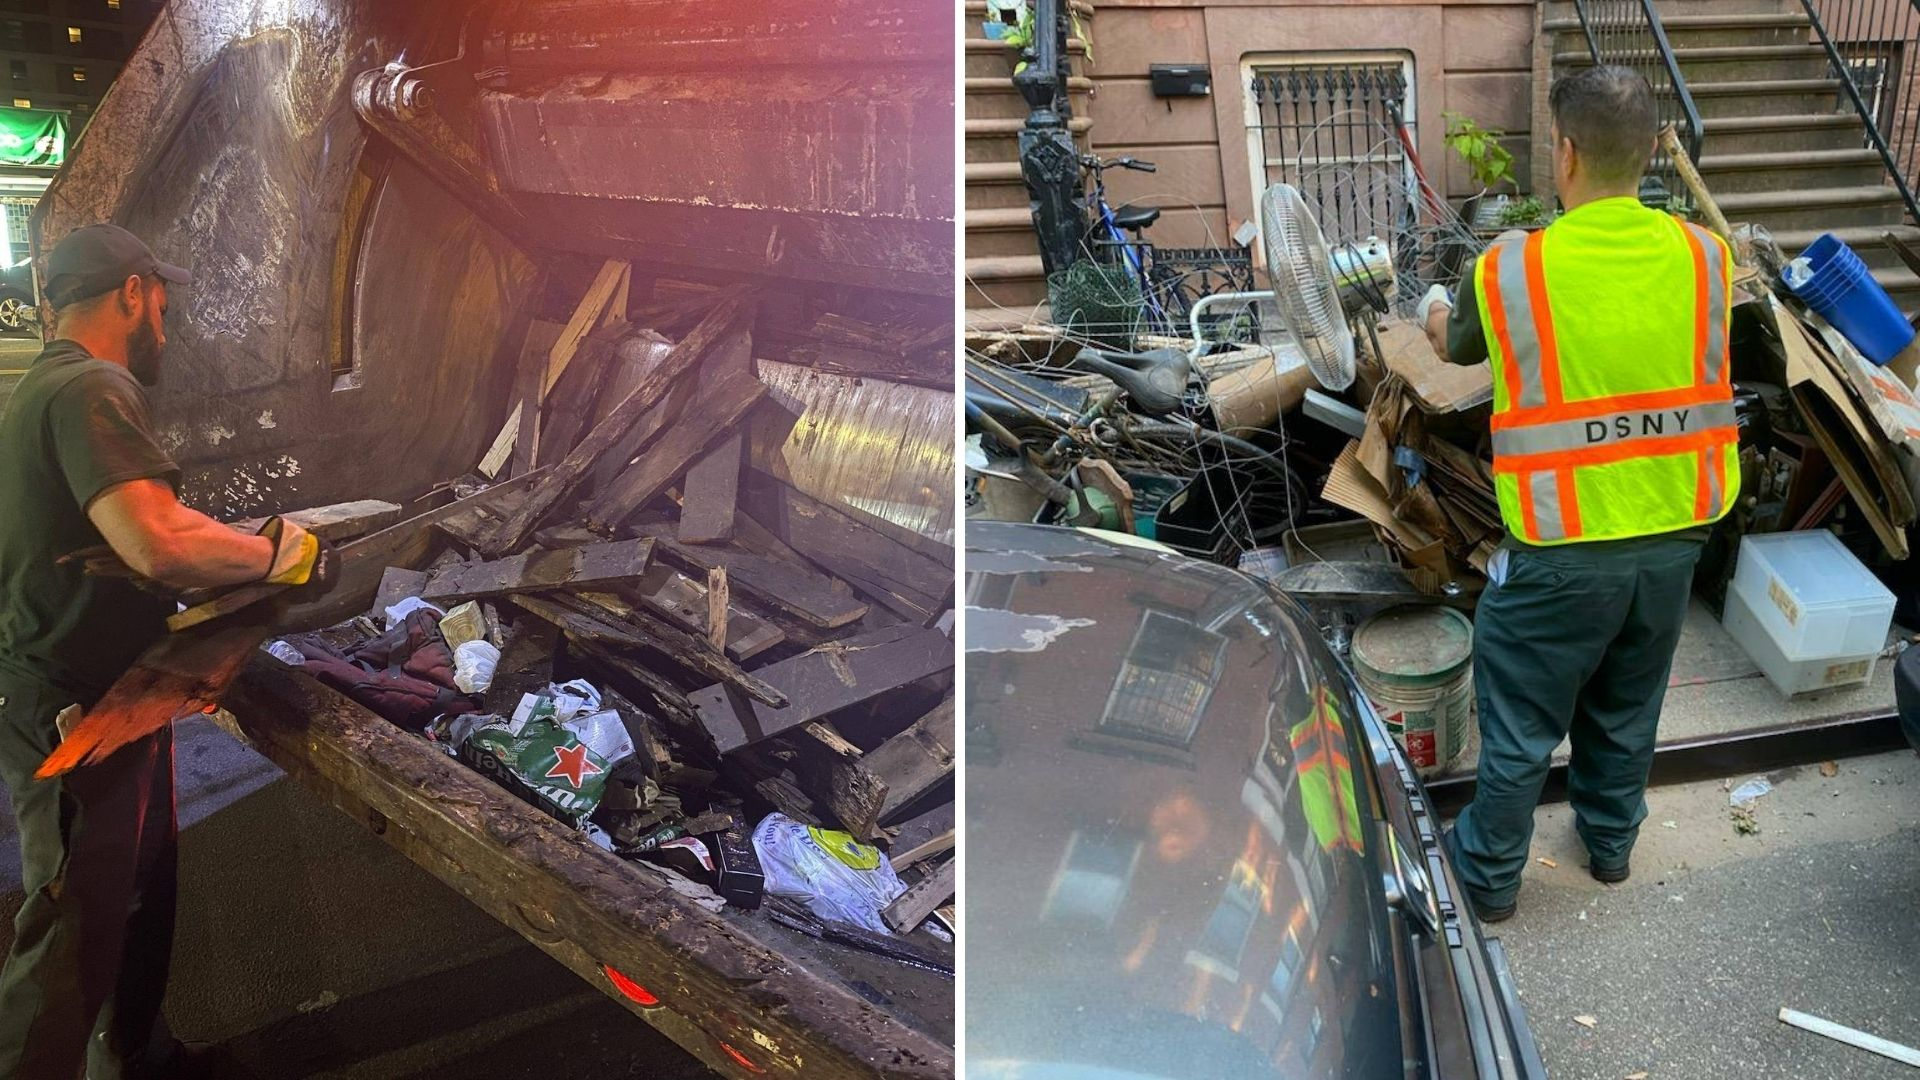 DSNY cleanup